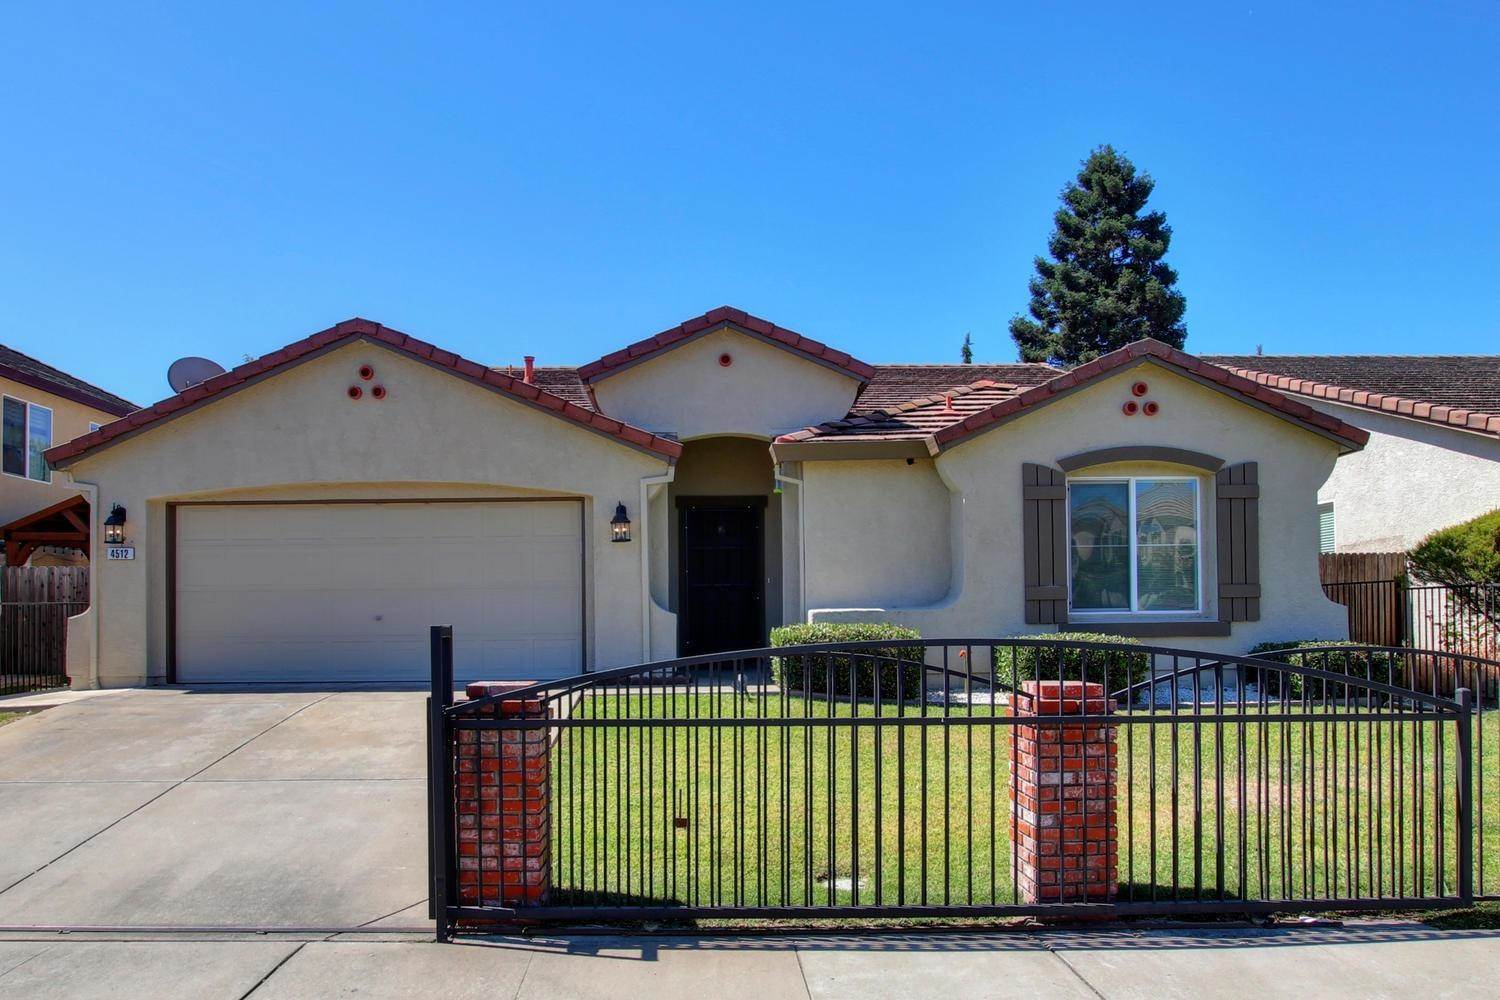 4512 Woodhawk Way, Antelope, CA 95843